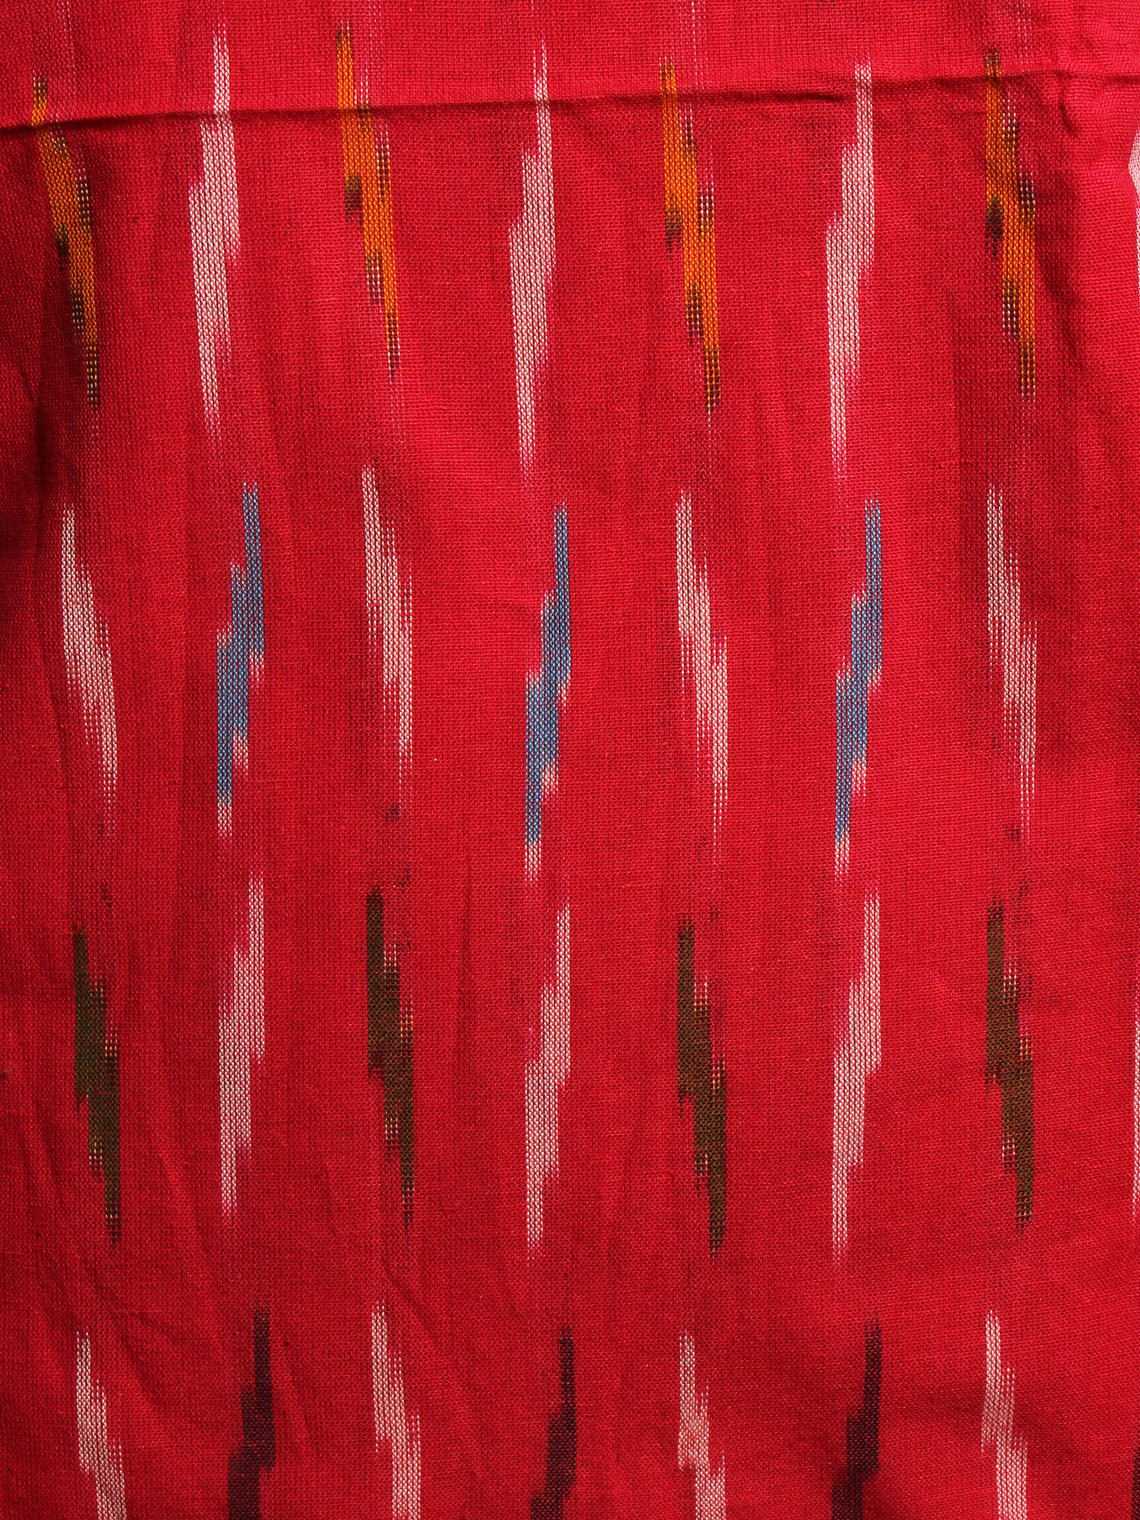 Currant Red Yellow Black White Ikat Handwoven Cotton Suit Fabric Set of 3 - S1002004